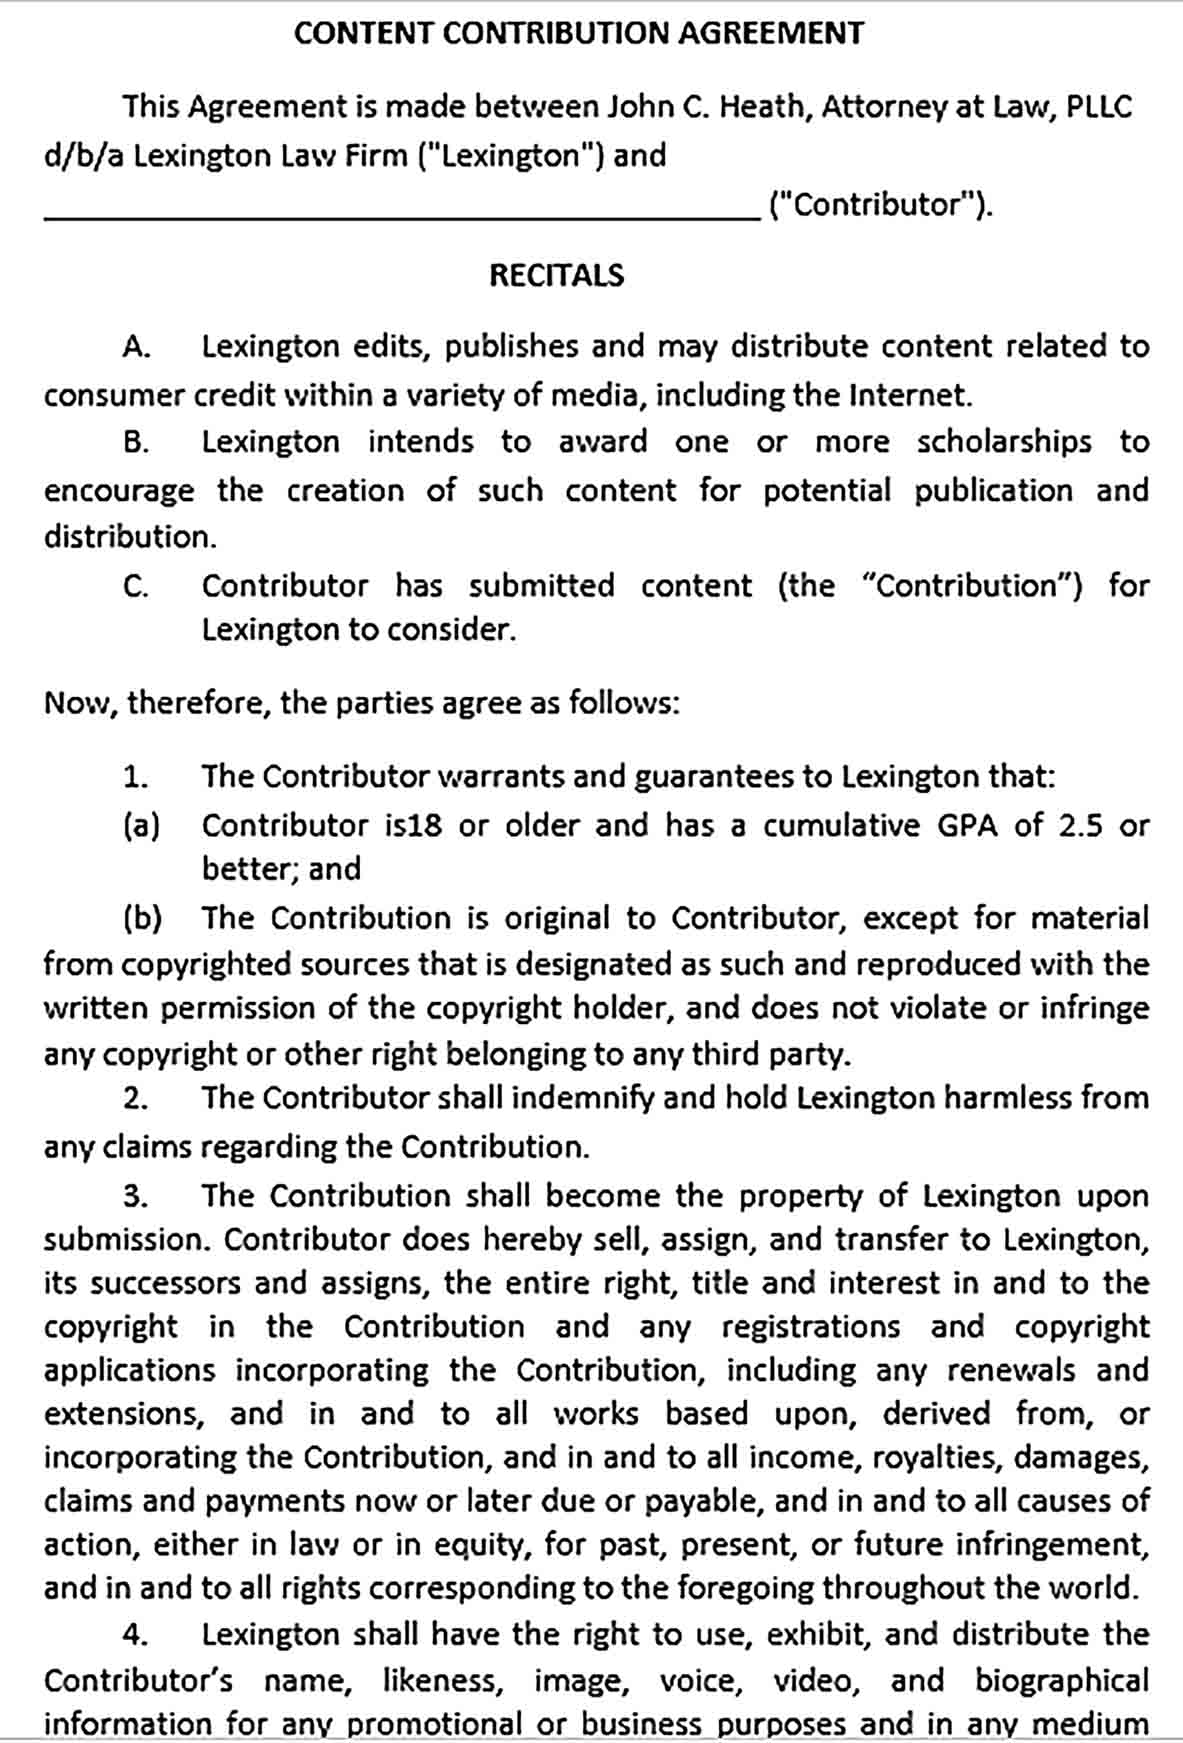 Sample Content Contribution Agreement